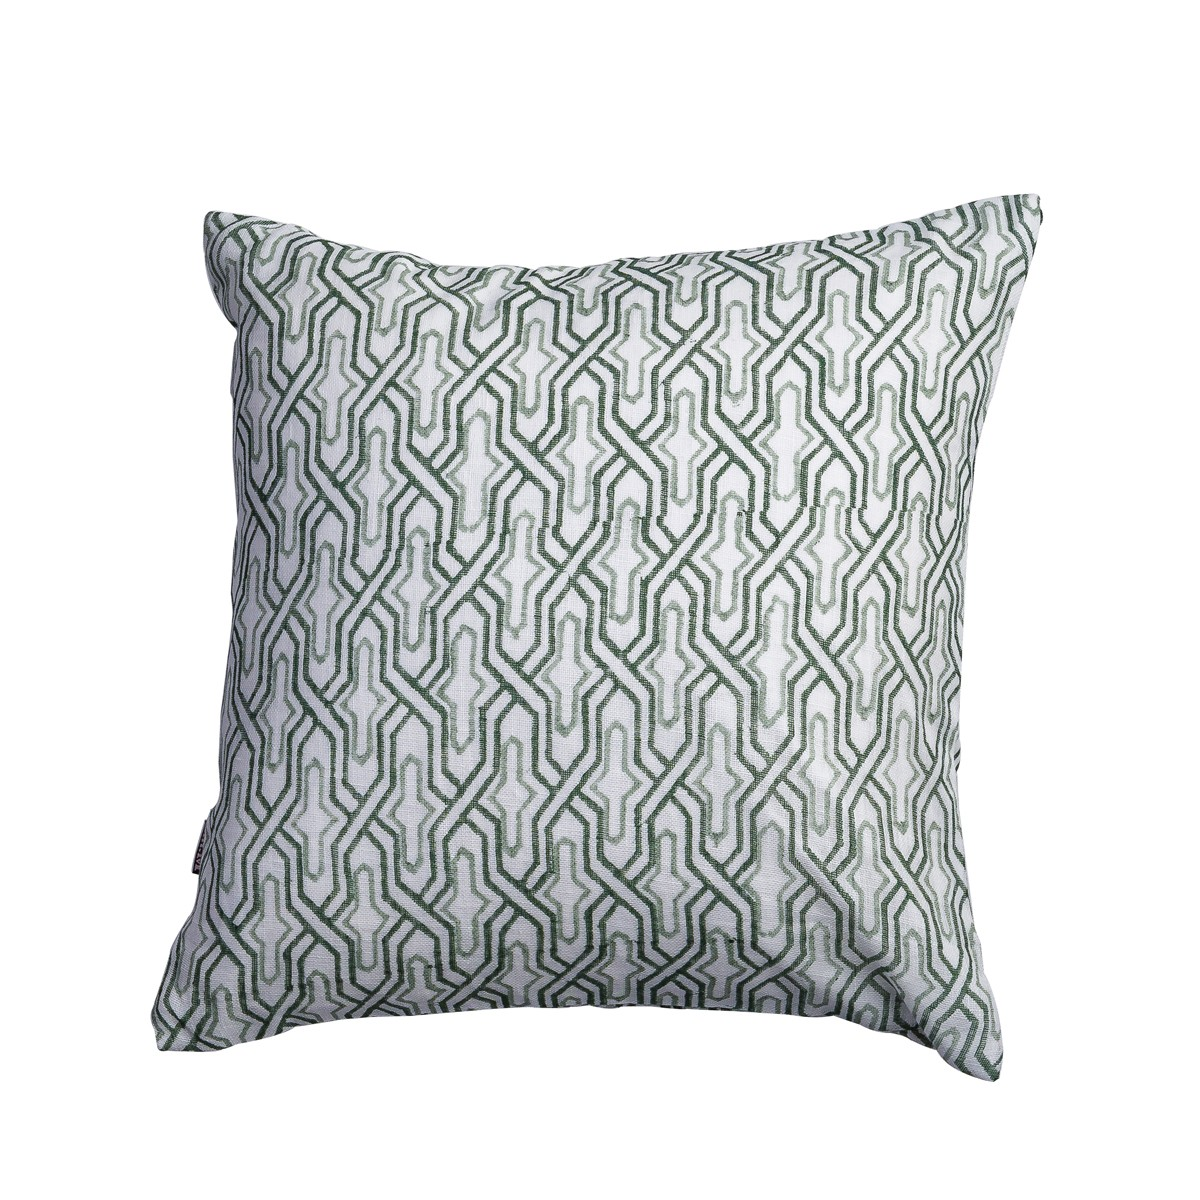 Single Square Green Patterned Cushion Cover